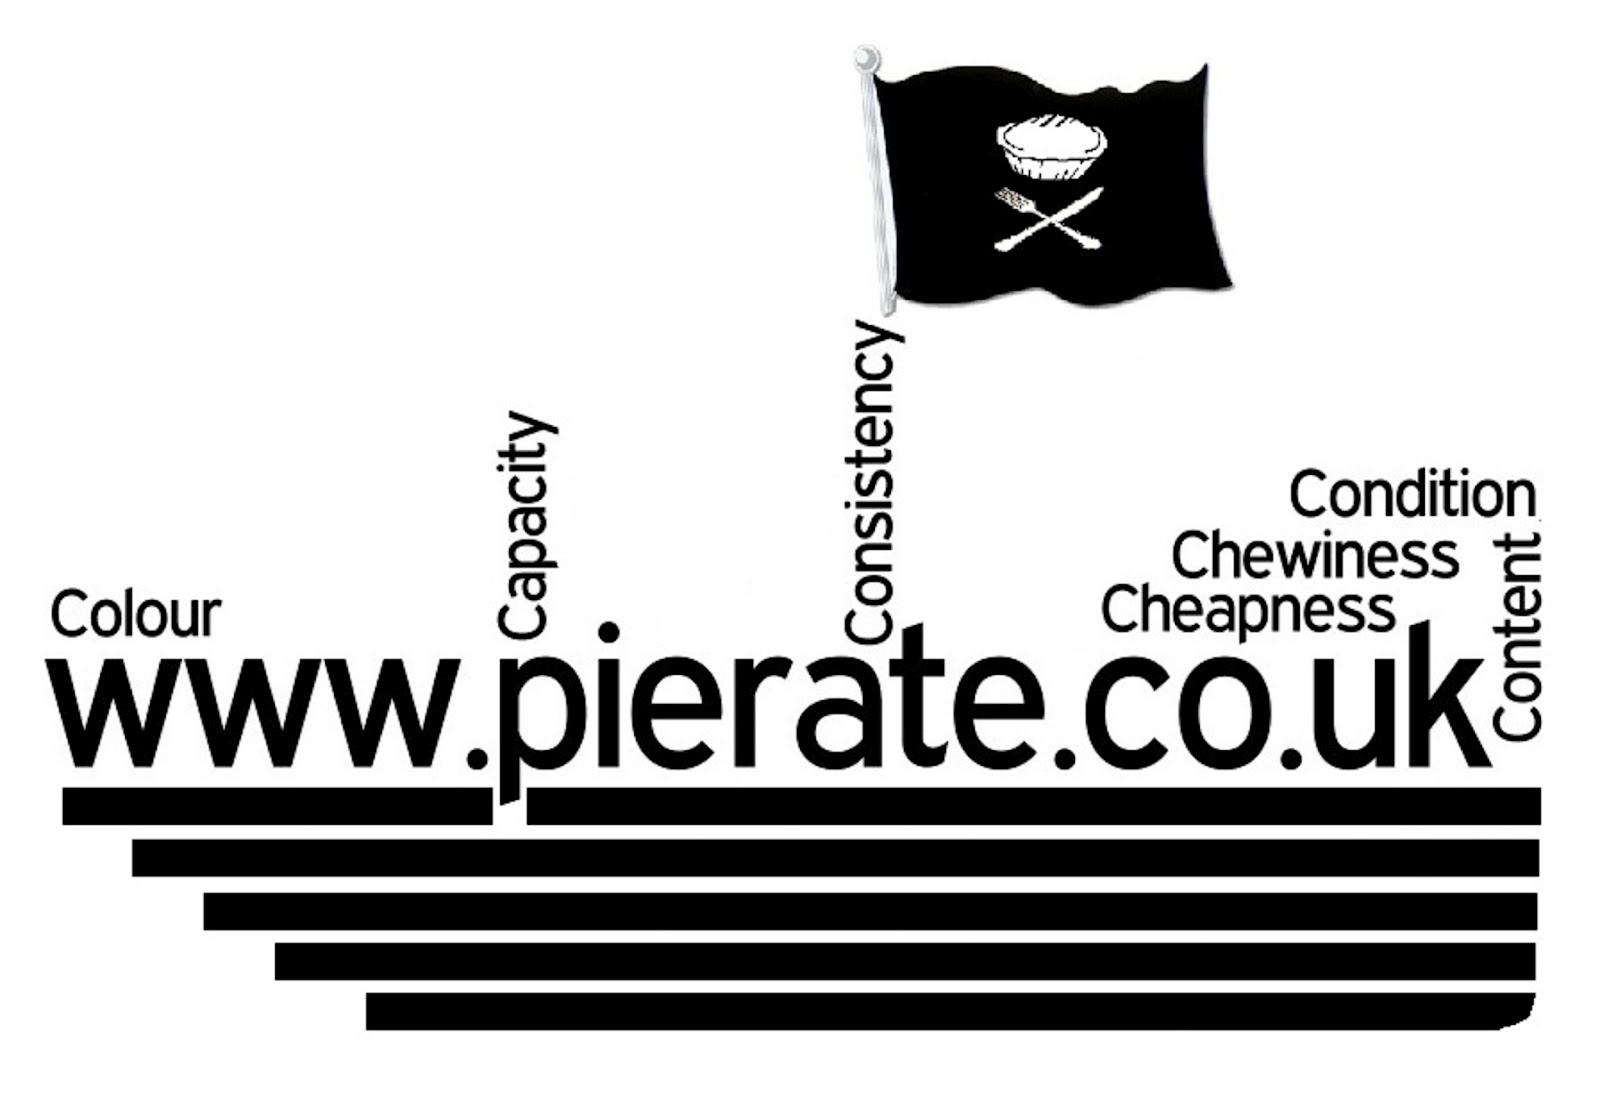 Pierate Ship